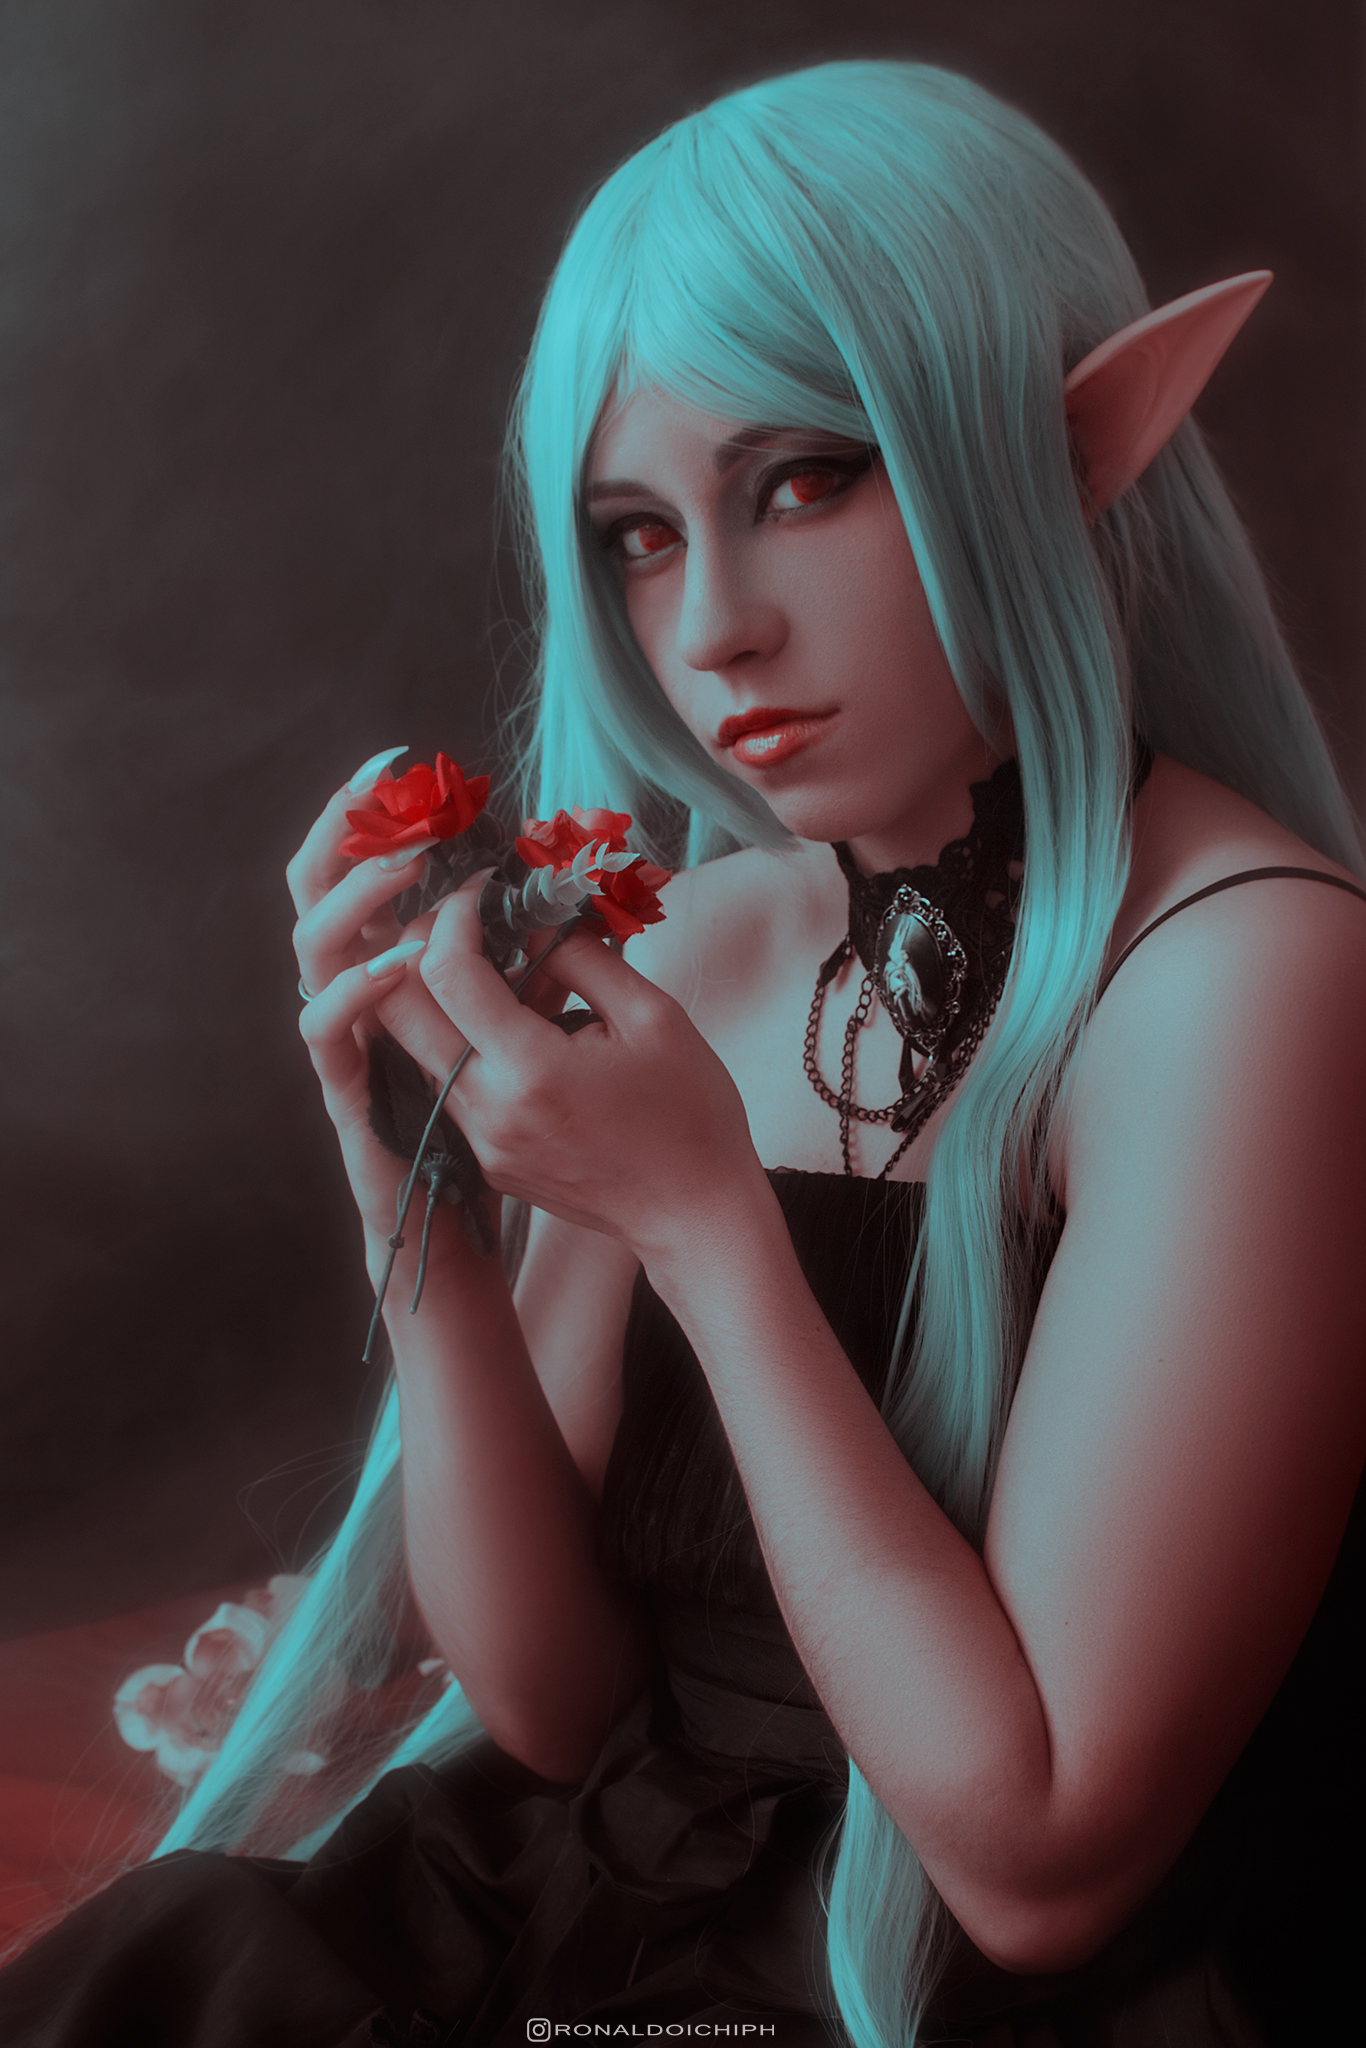 Elves - Gothic Elven photography with the model Kath and photography by Ronaldo Ichi